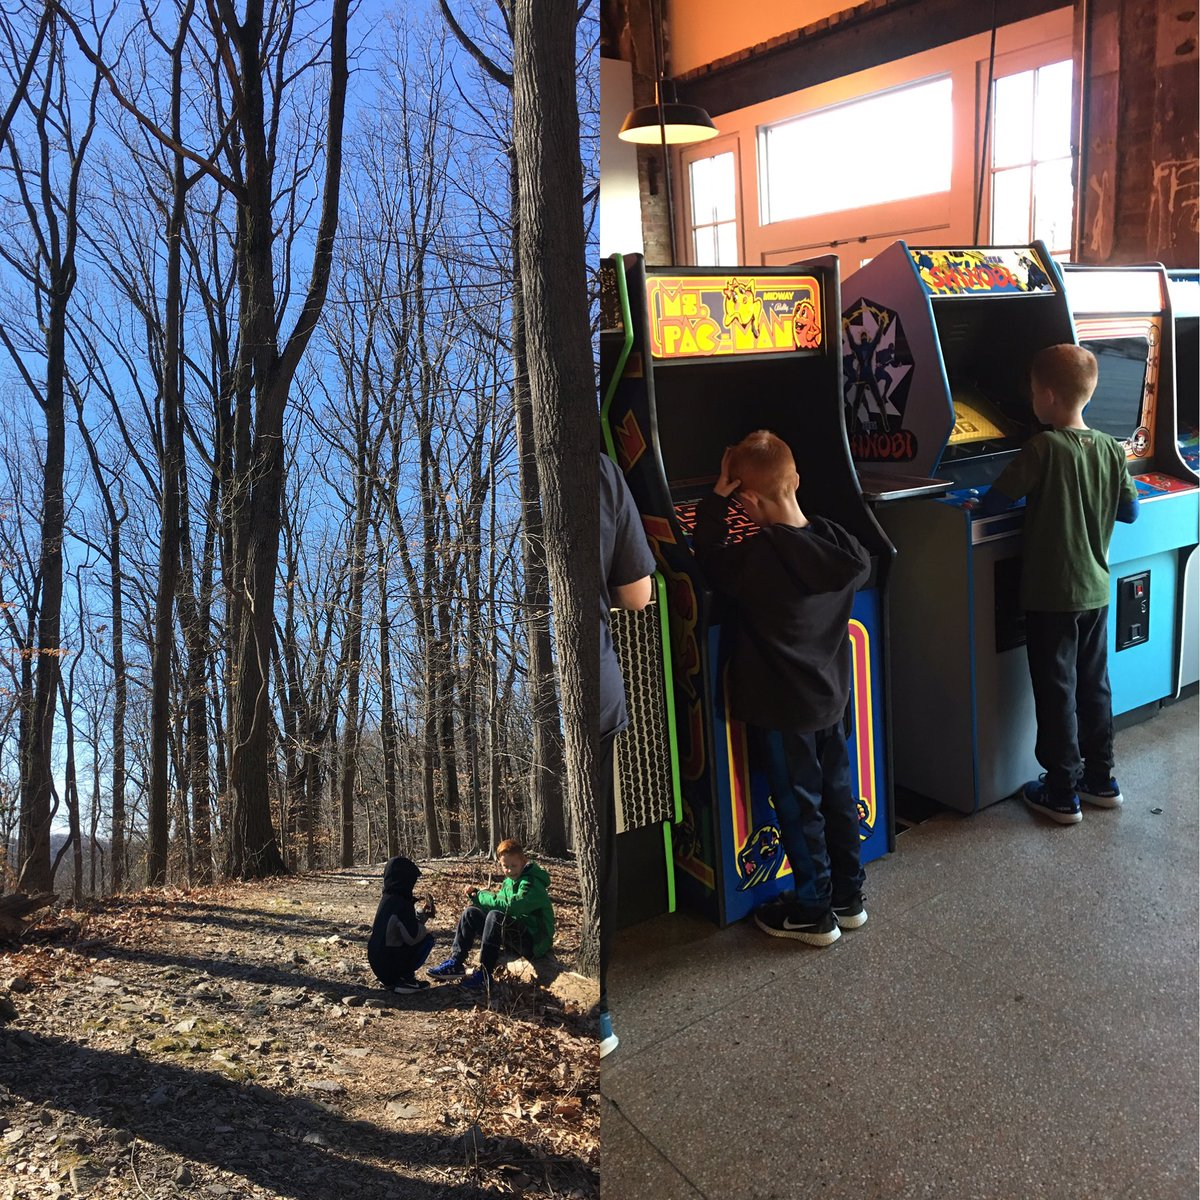 A well rounded #SundayFunday -hike at @CromwellValleyP and retro video games at North Avenue Market